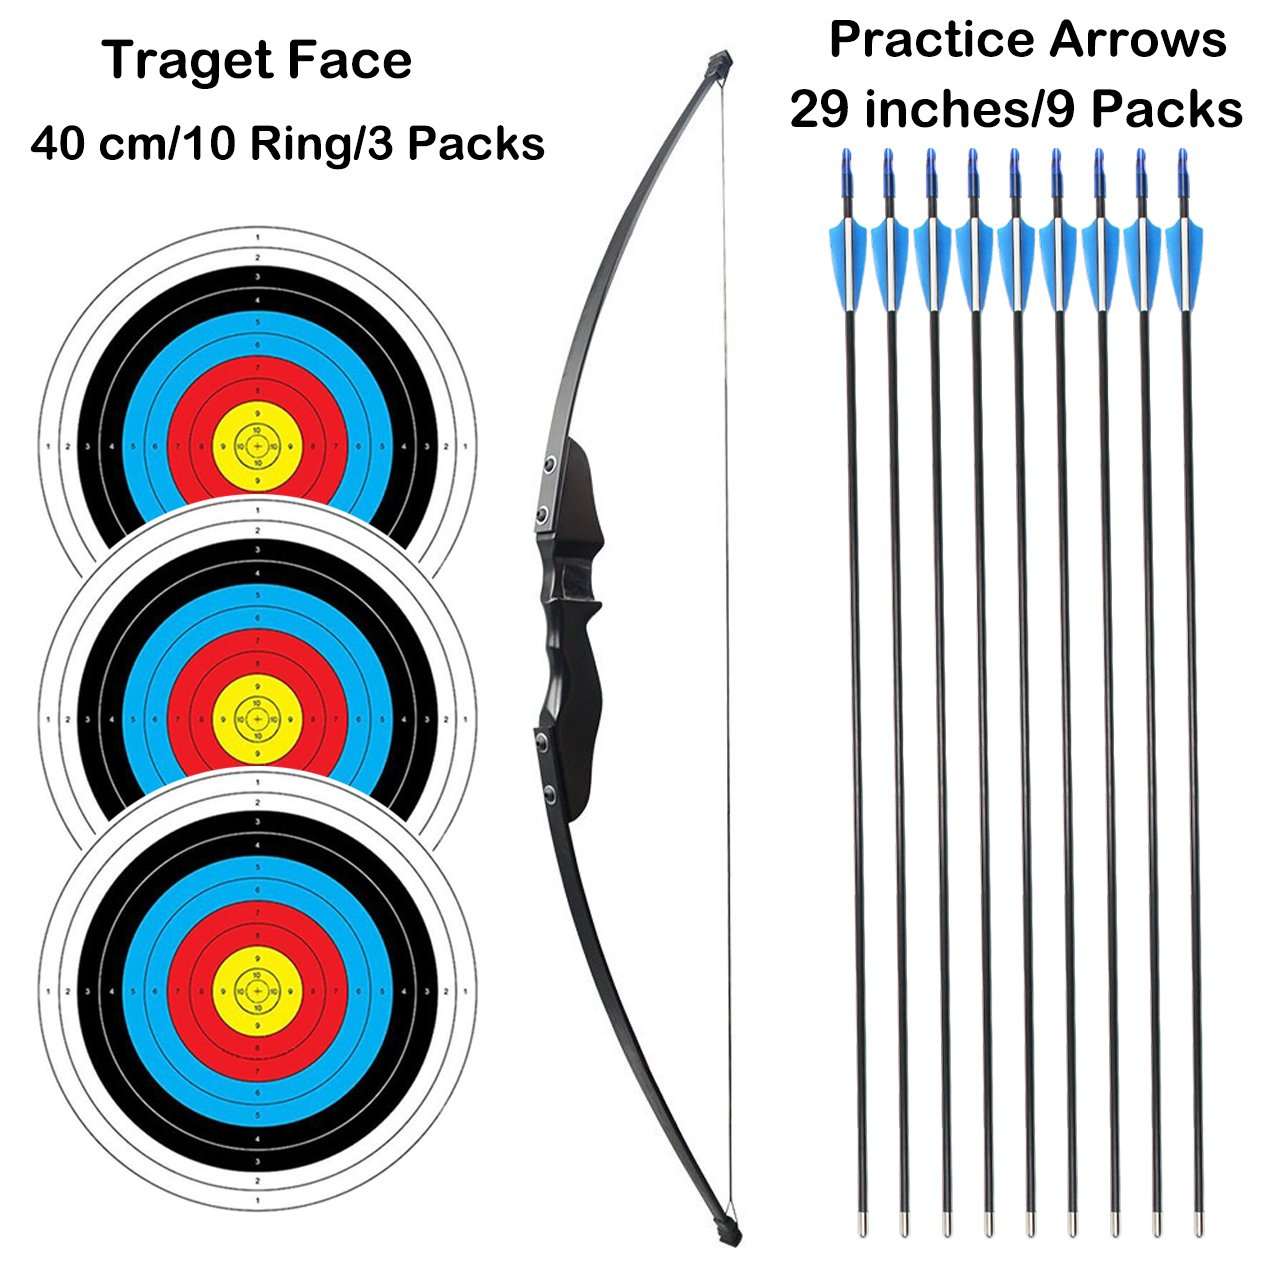 SinoArt 54'' Long Bow for Right Handed 30 LBs Draw Weight Archery Bow Shooting Larp Hunting Game With 9 Arrows and 3 Target Faces